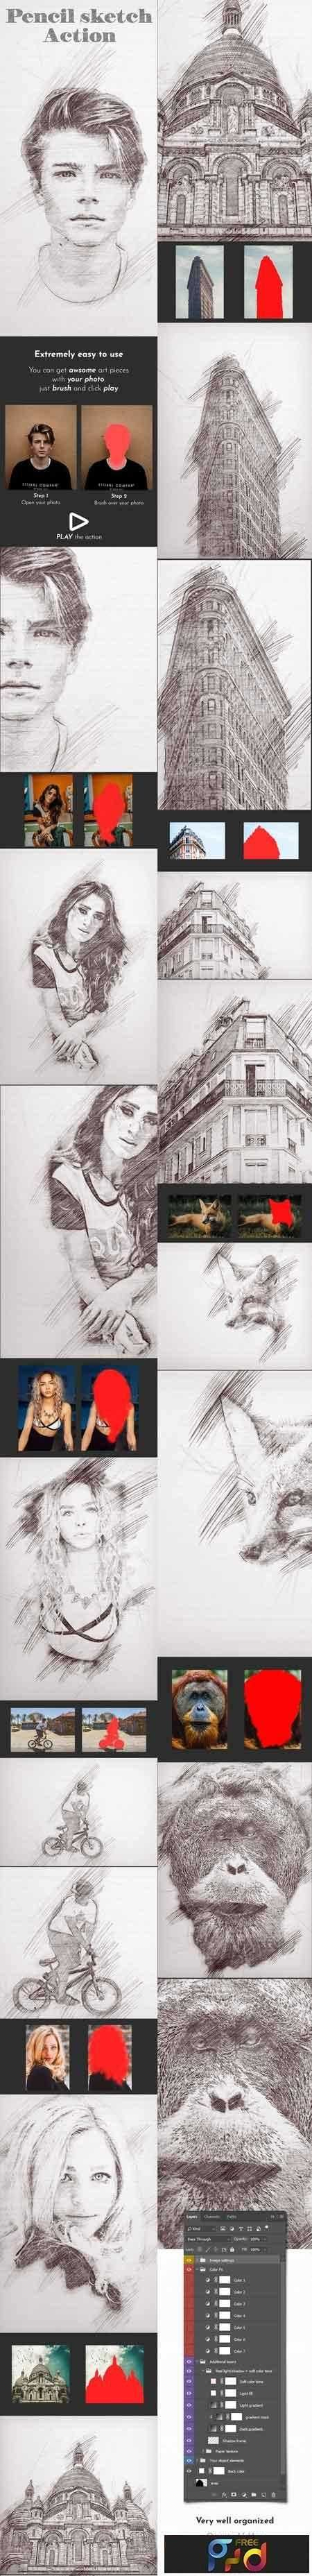 1808081 pencil sketch photoshop action 22055959 free psd download free photoshop action lightroom preset plugin vector stock font with google